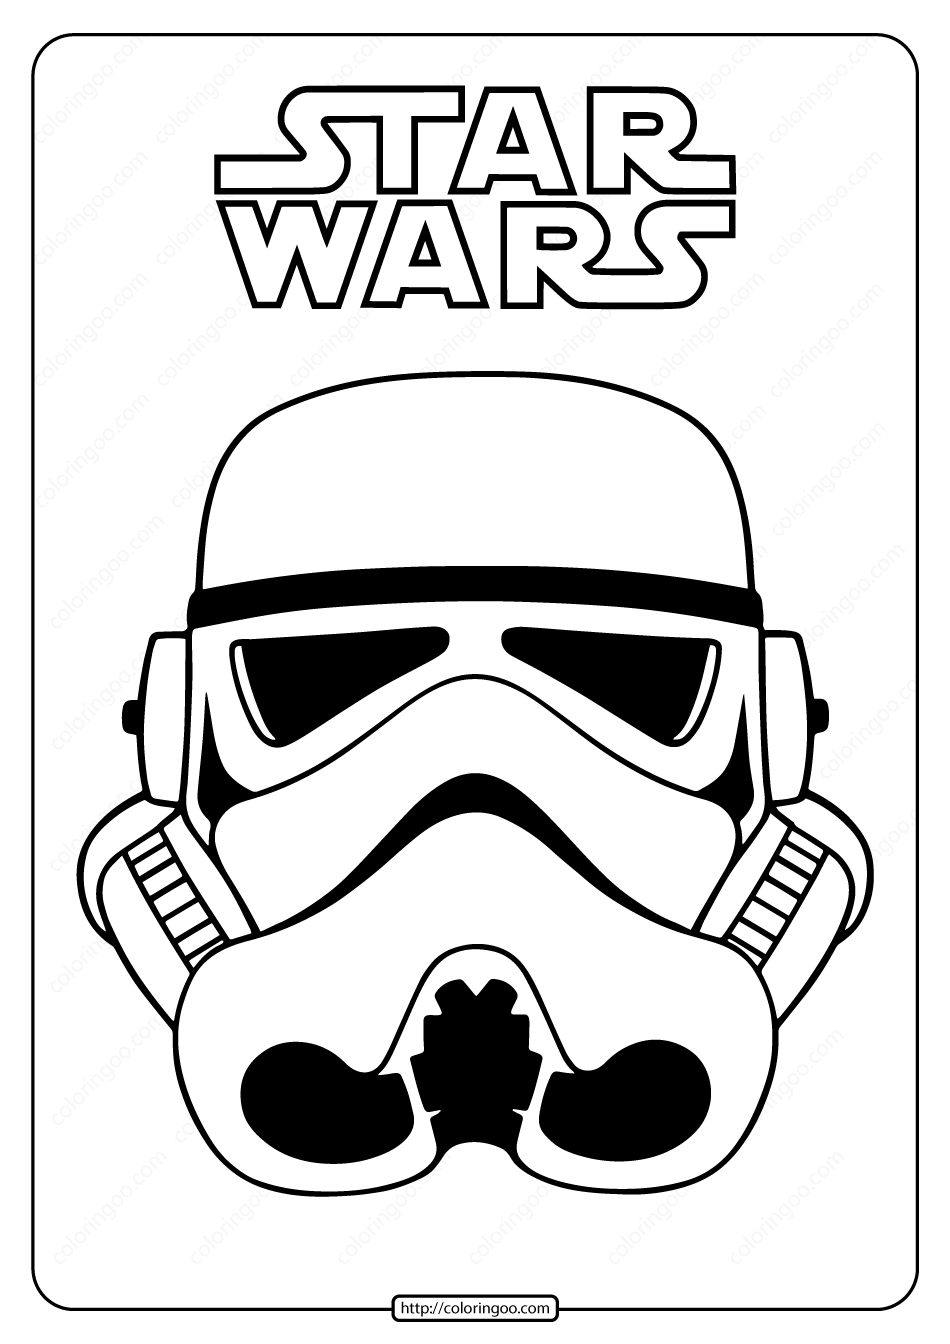 star wars color free printable star wars coloring pages play party plan color wars star